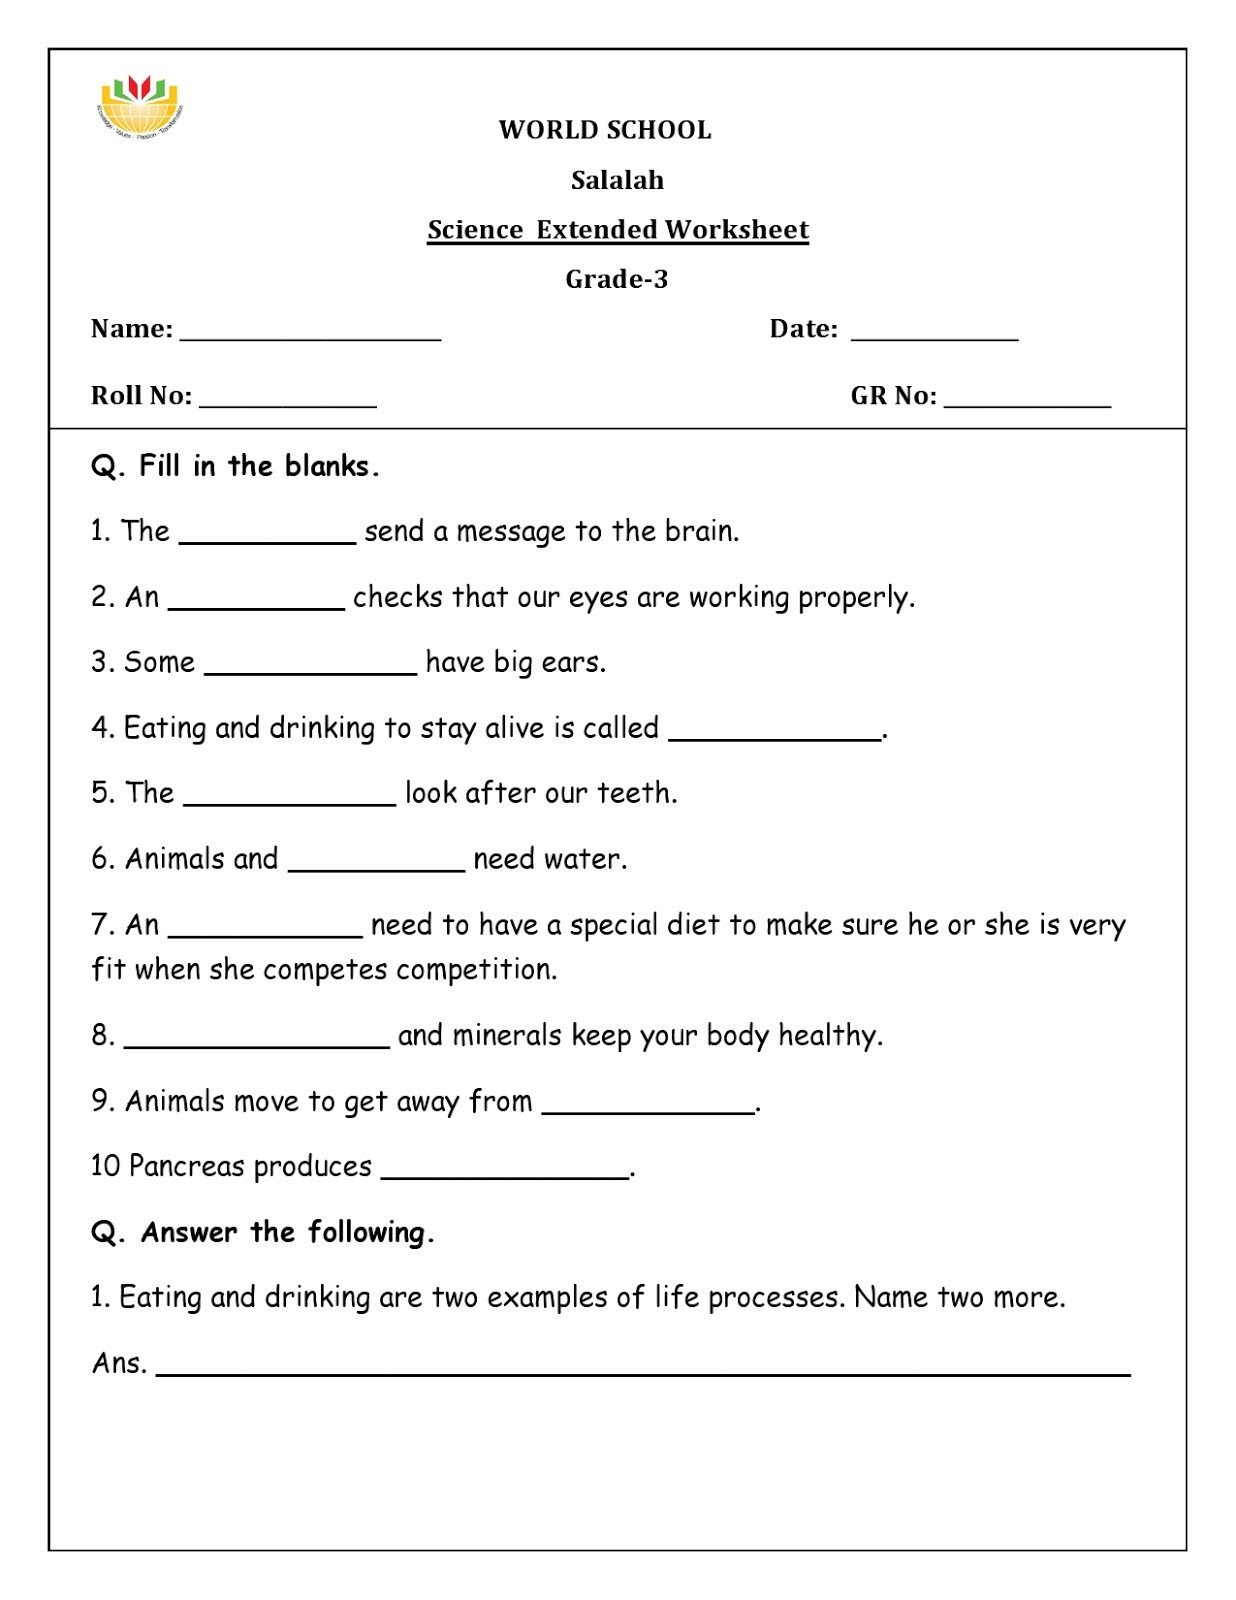 Free 6th Grade Science Worksheets Science Worksheets for Grade to Educations Math Games